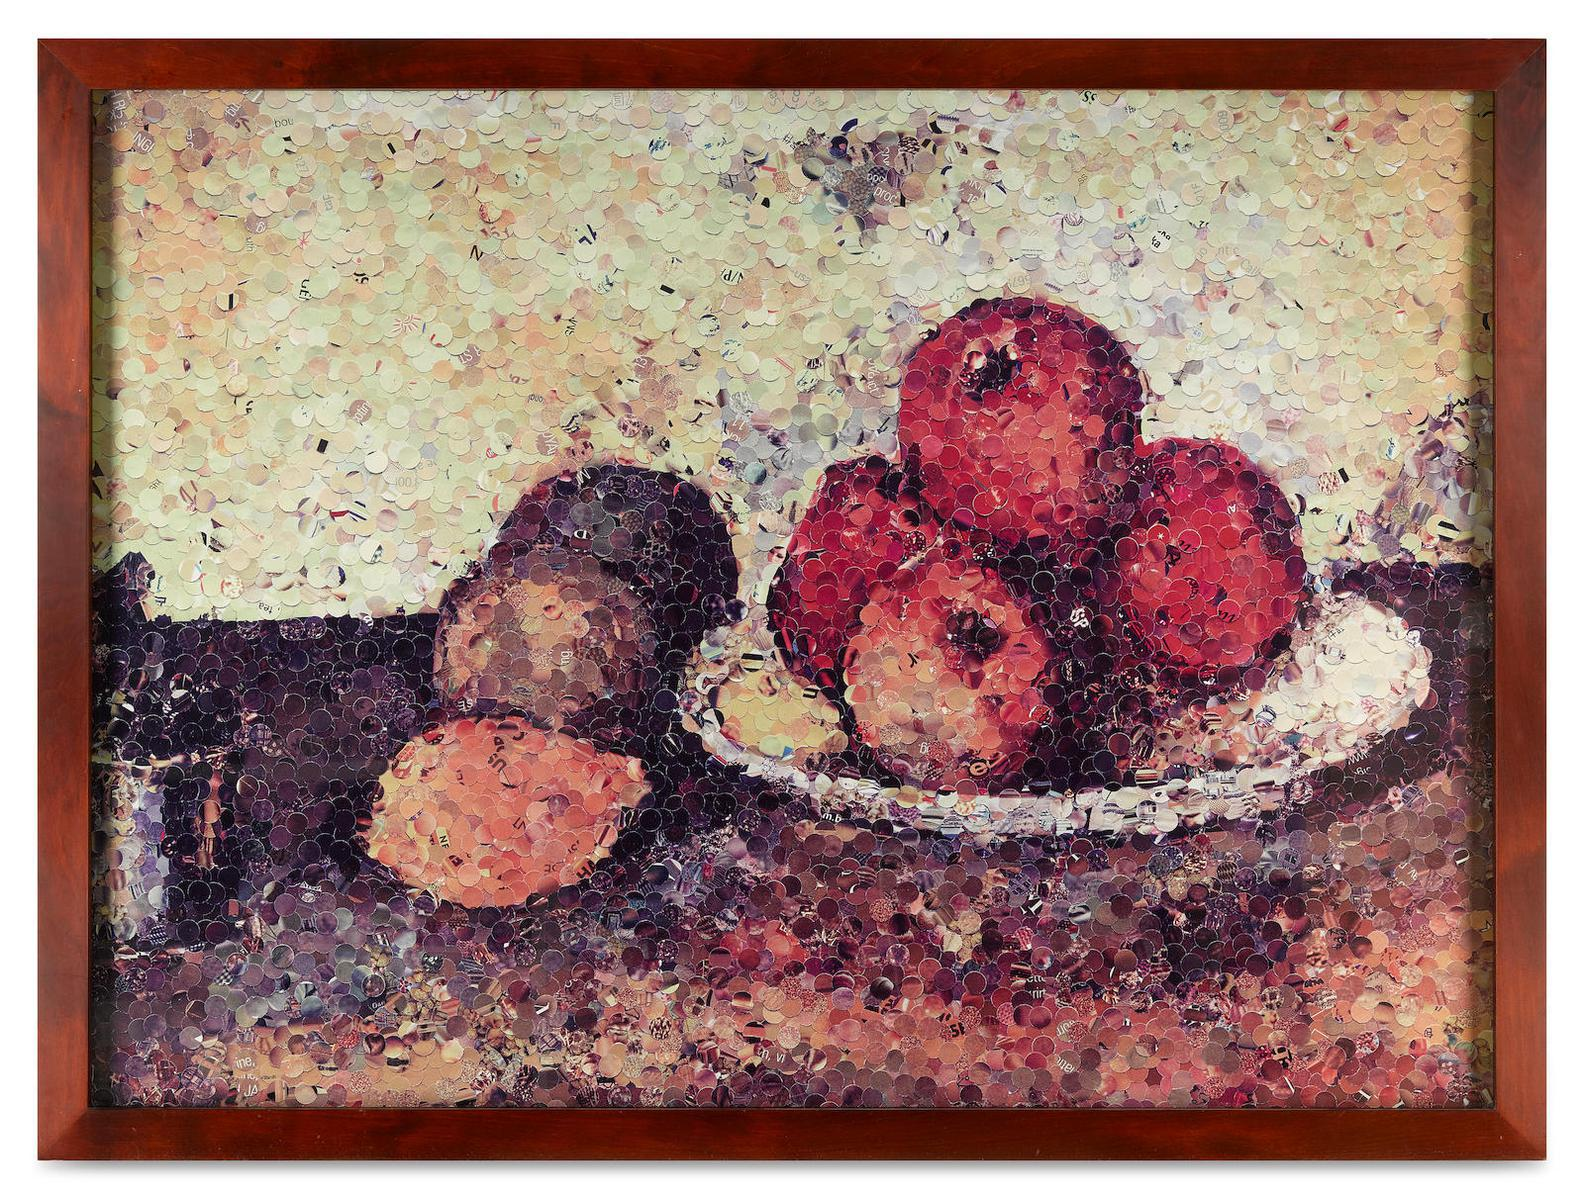 Vik Muniz-Still Life With Apples After Cezanne (From Pictures Of Magazines Series), 2004-2004